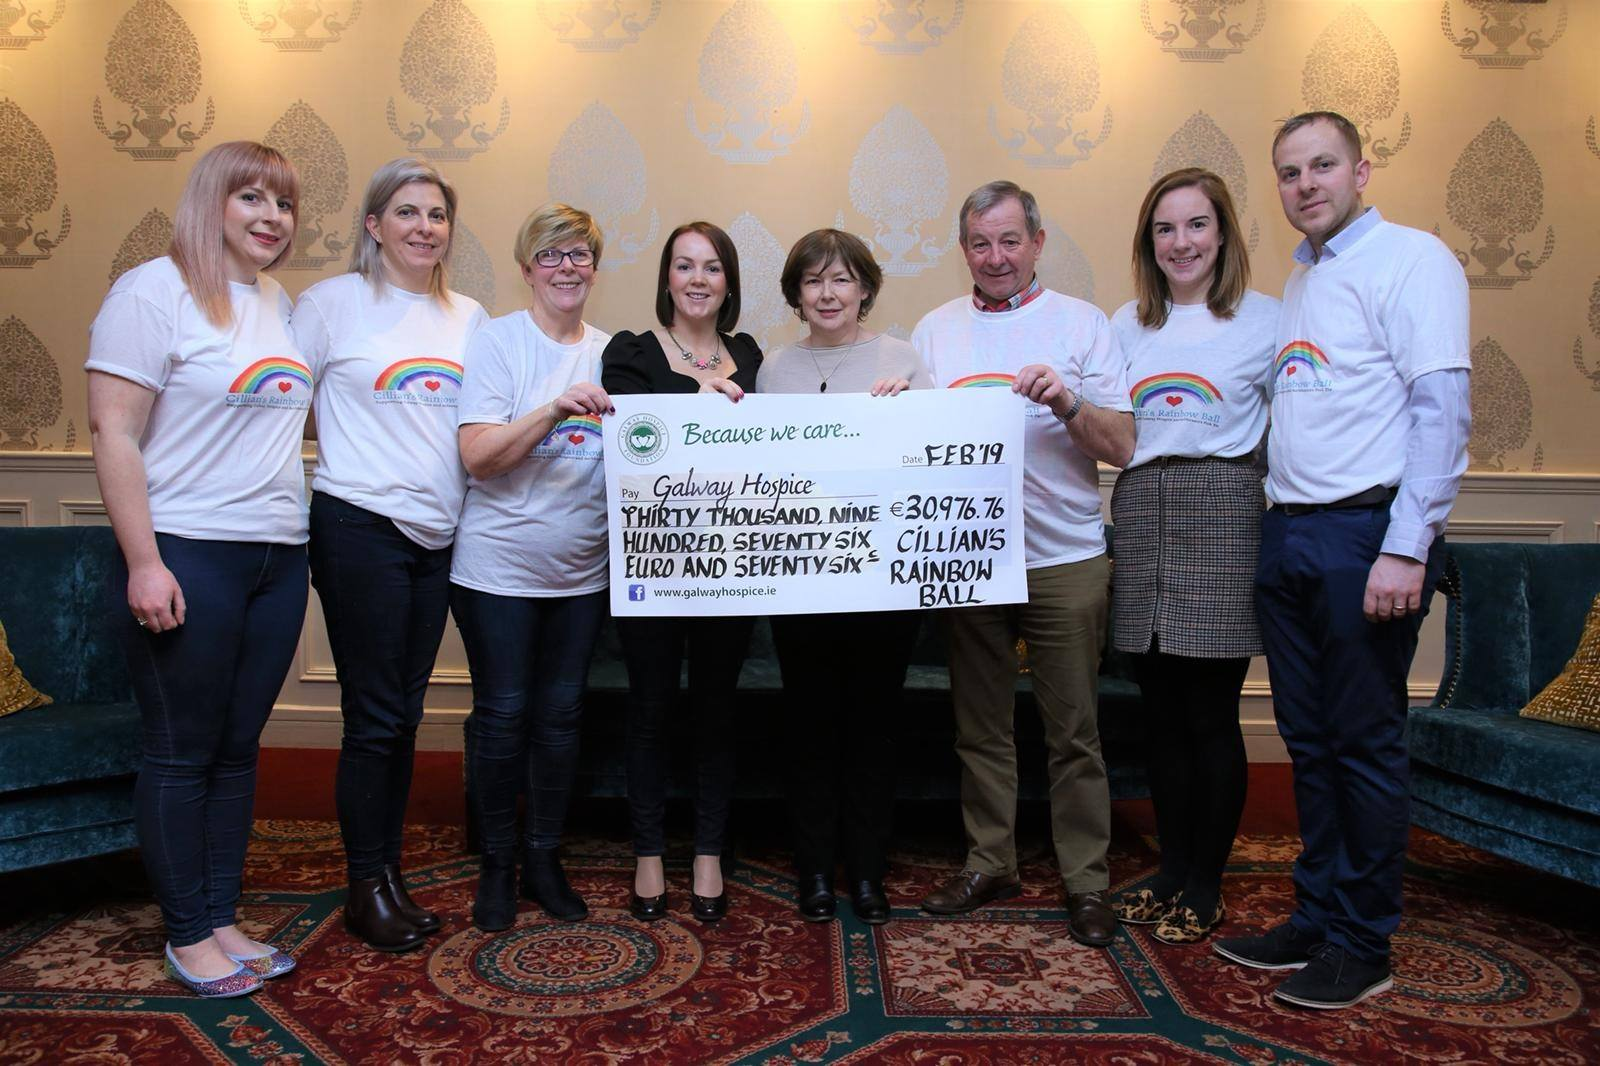 Memorial ball for young Cillian Cooney raises over €30,000 for Galway Hospice